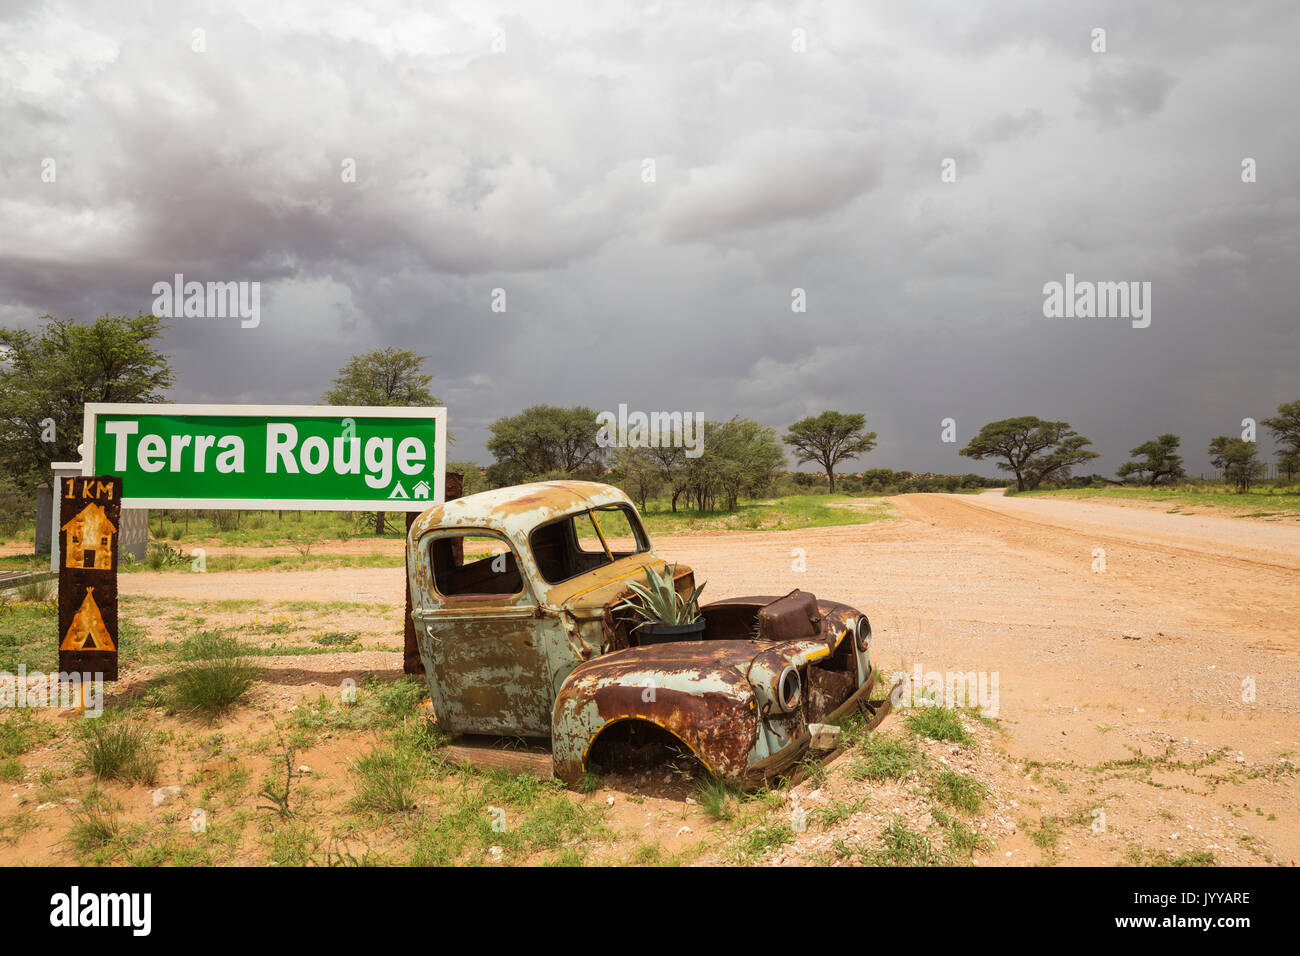 Car wreck at the entrance gate of Terra Rouge guest farm, rainy season with green vegetation, C 15 gravel road, - Stock Image